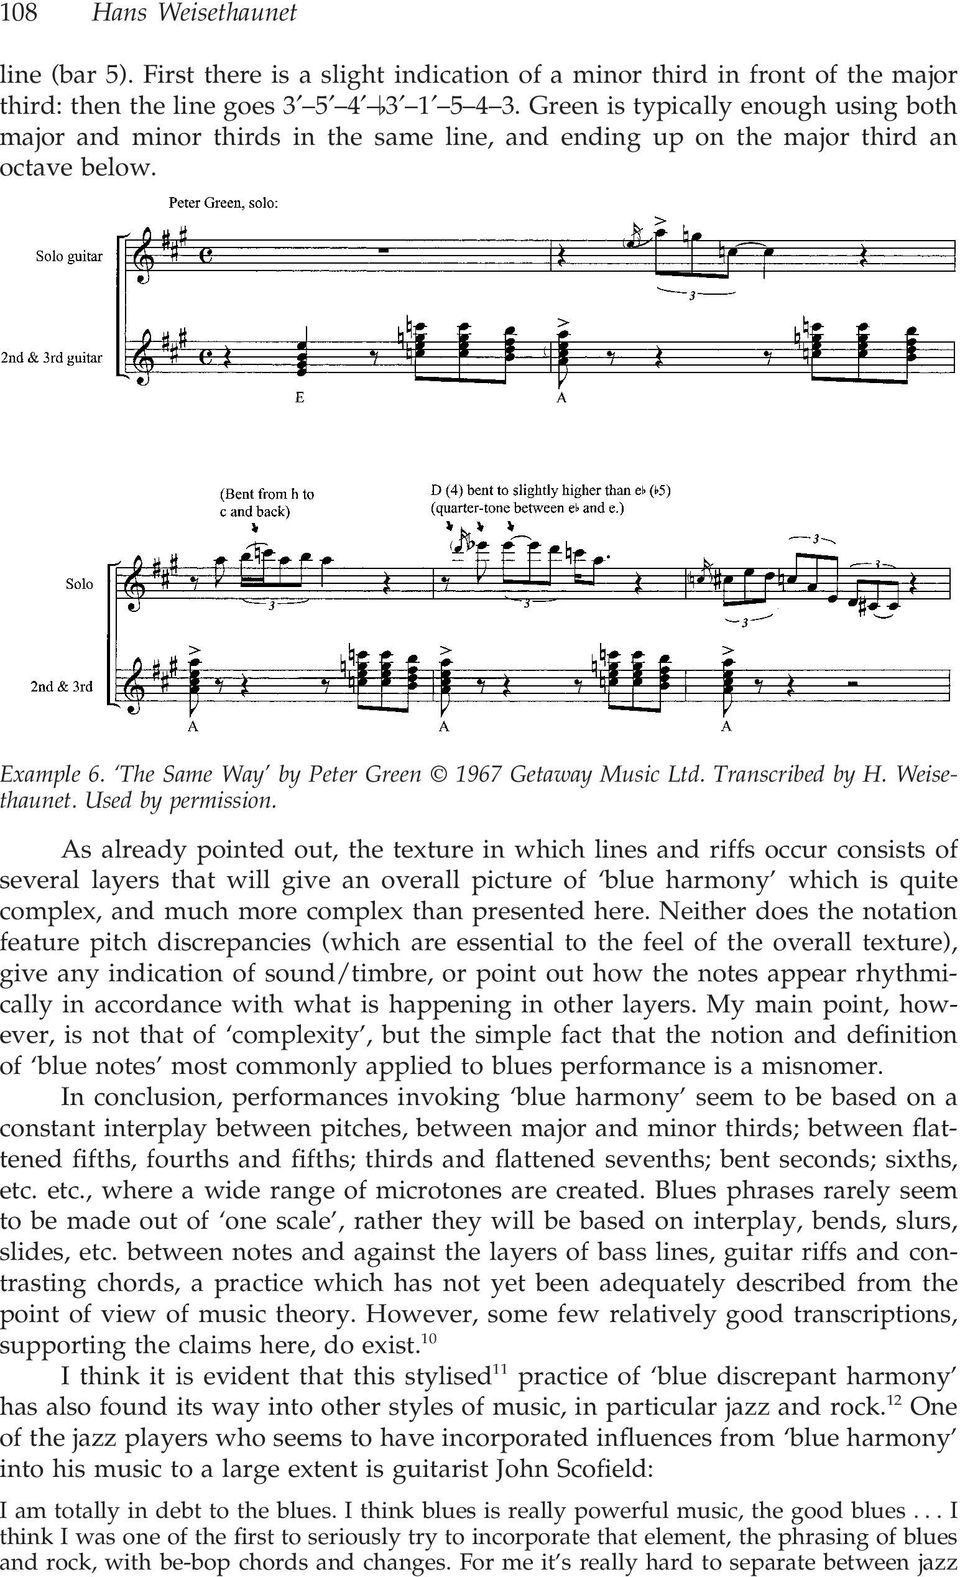 Transcribed by H. Weisethaunet. Used by permission.